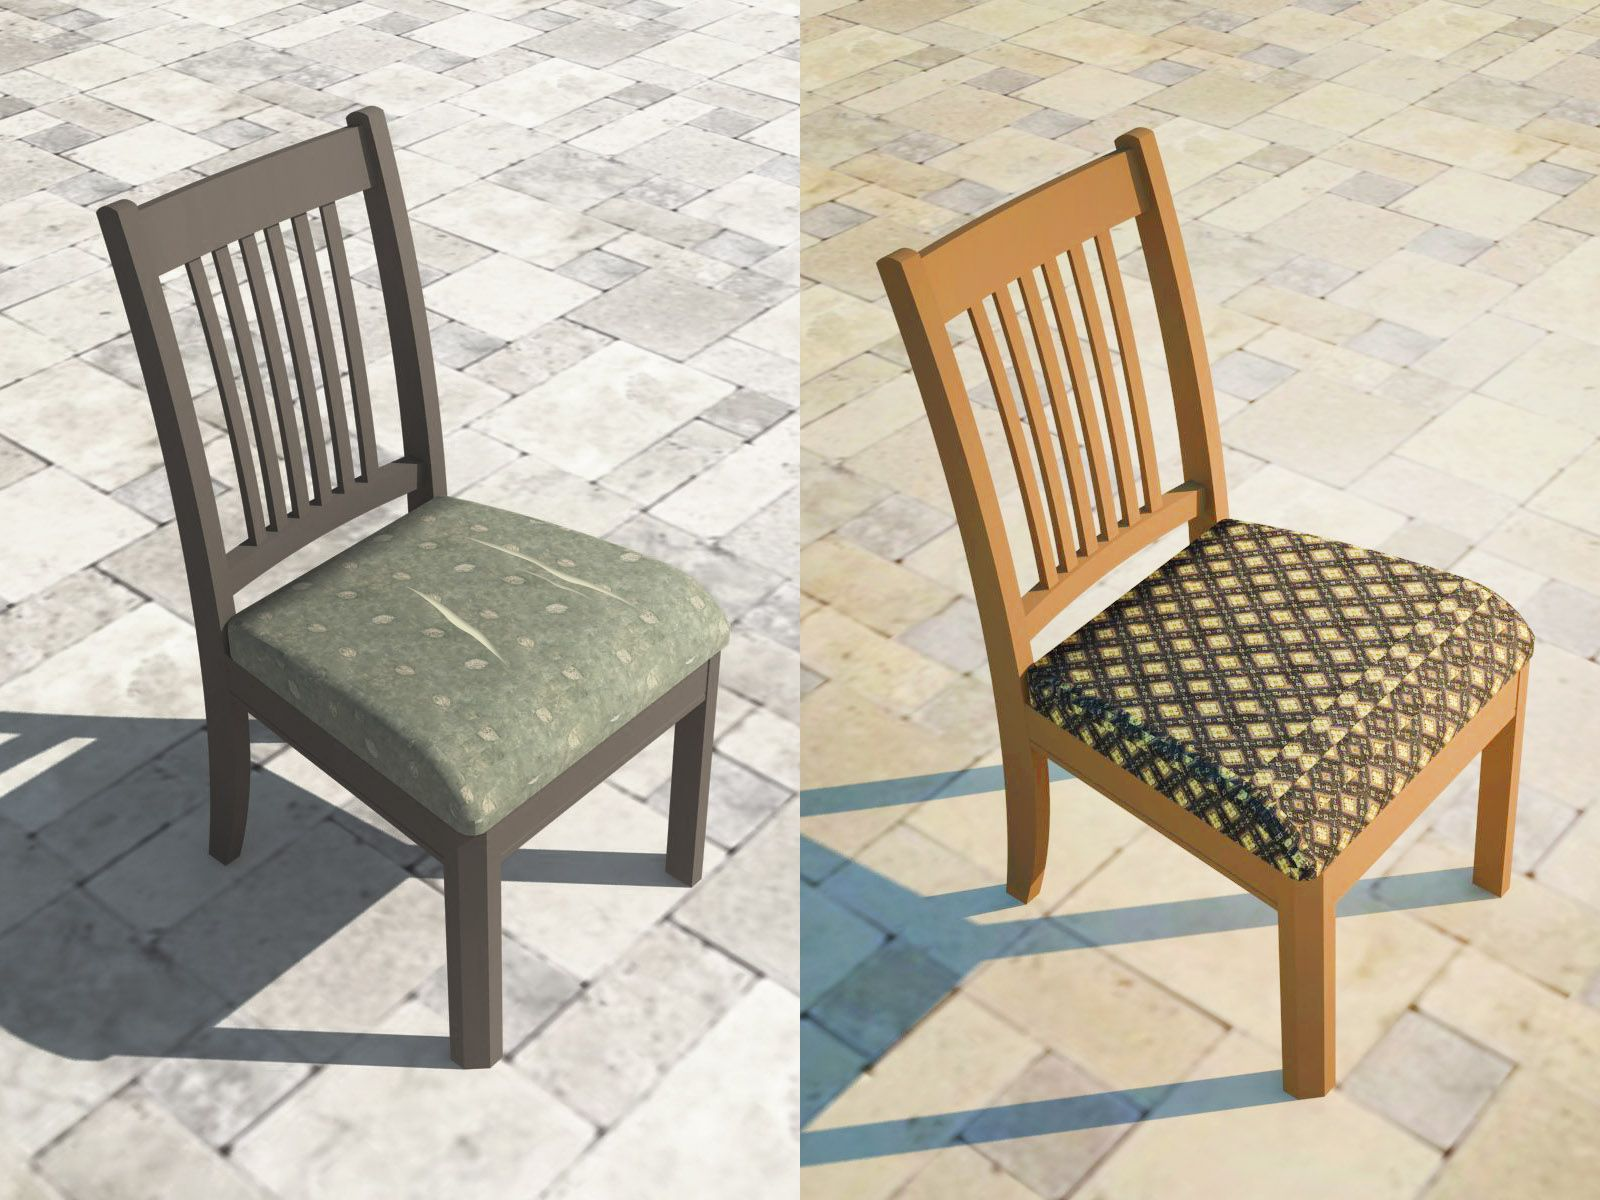 How To Reupholster A Dining Chair Seat Dining Room Chair Cushions Reupholster Dining Room Chairs Reupholster Chair Dining